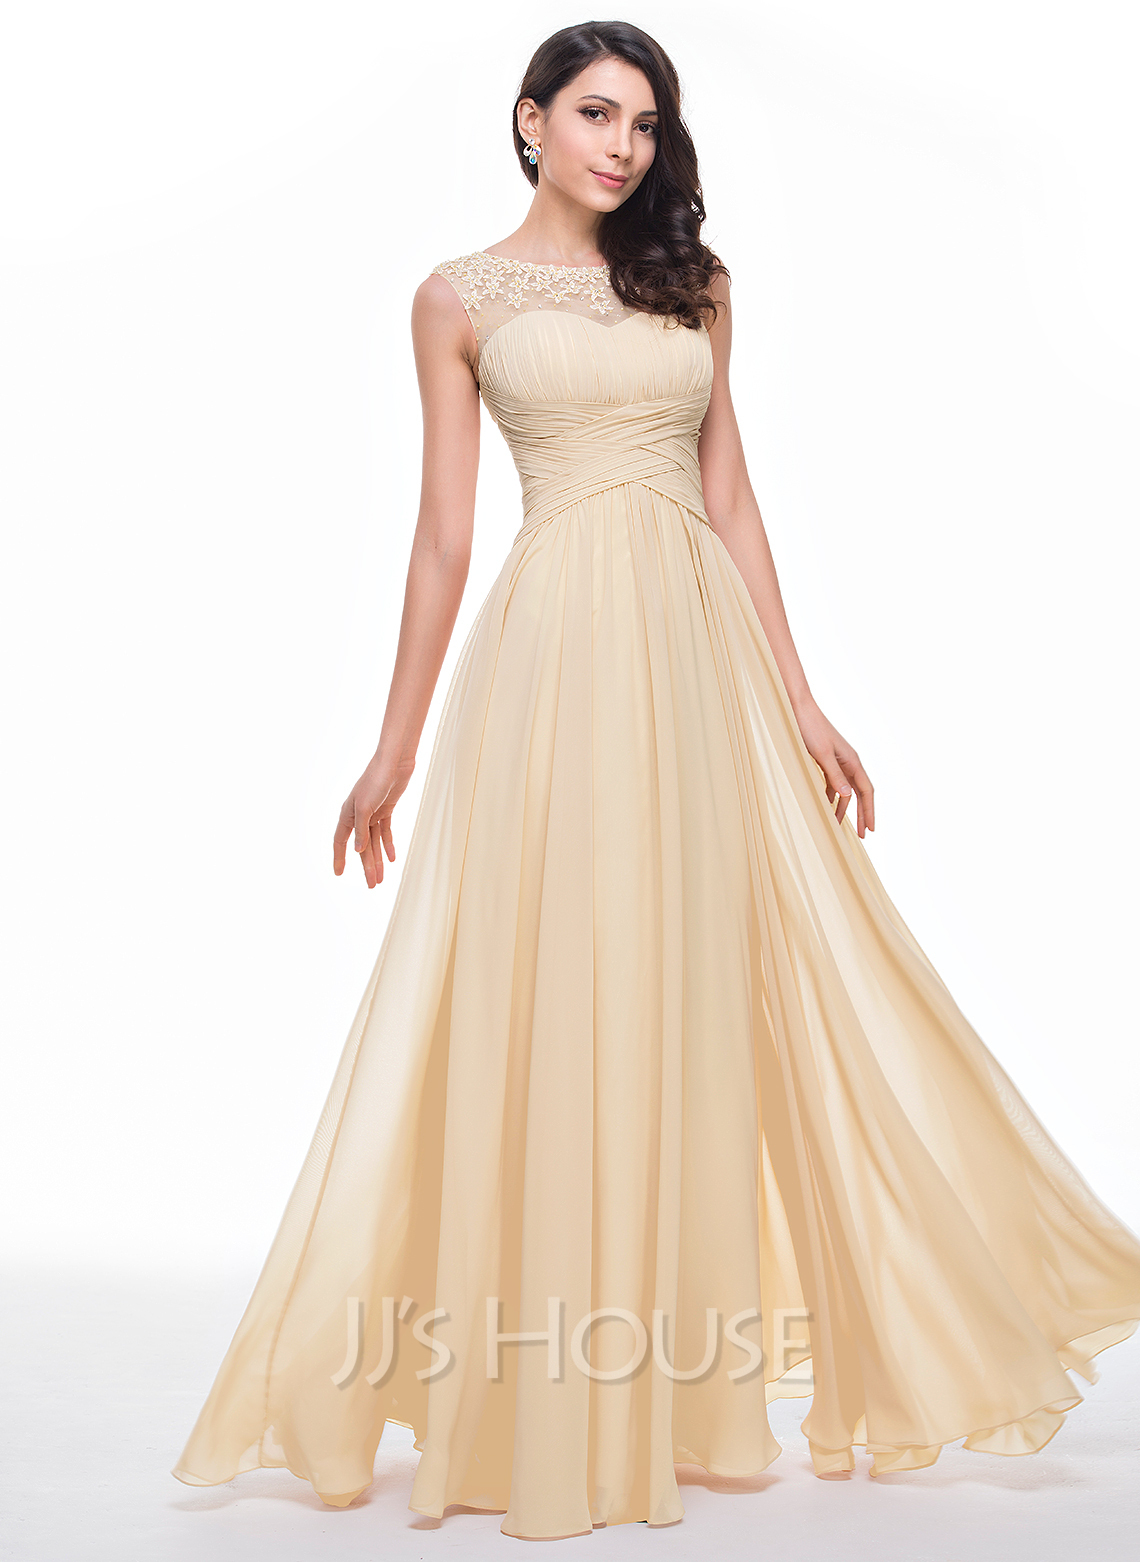 fdc4353b08f A-Line Princess Scoop Neck Floor-Length Chiffon Prom Dresses With Ruffle  Beading. Loading zoom